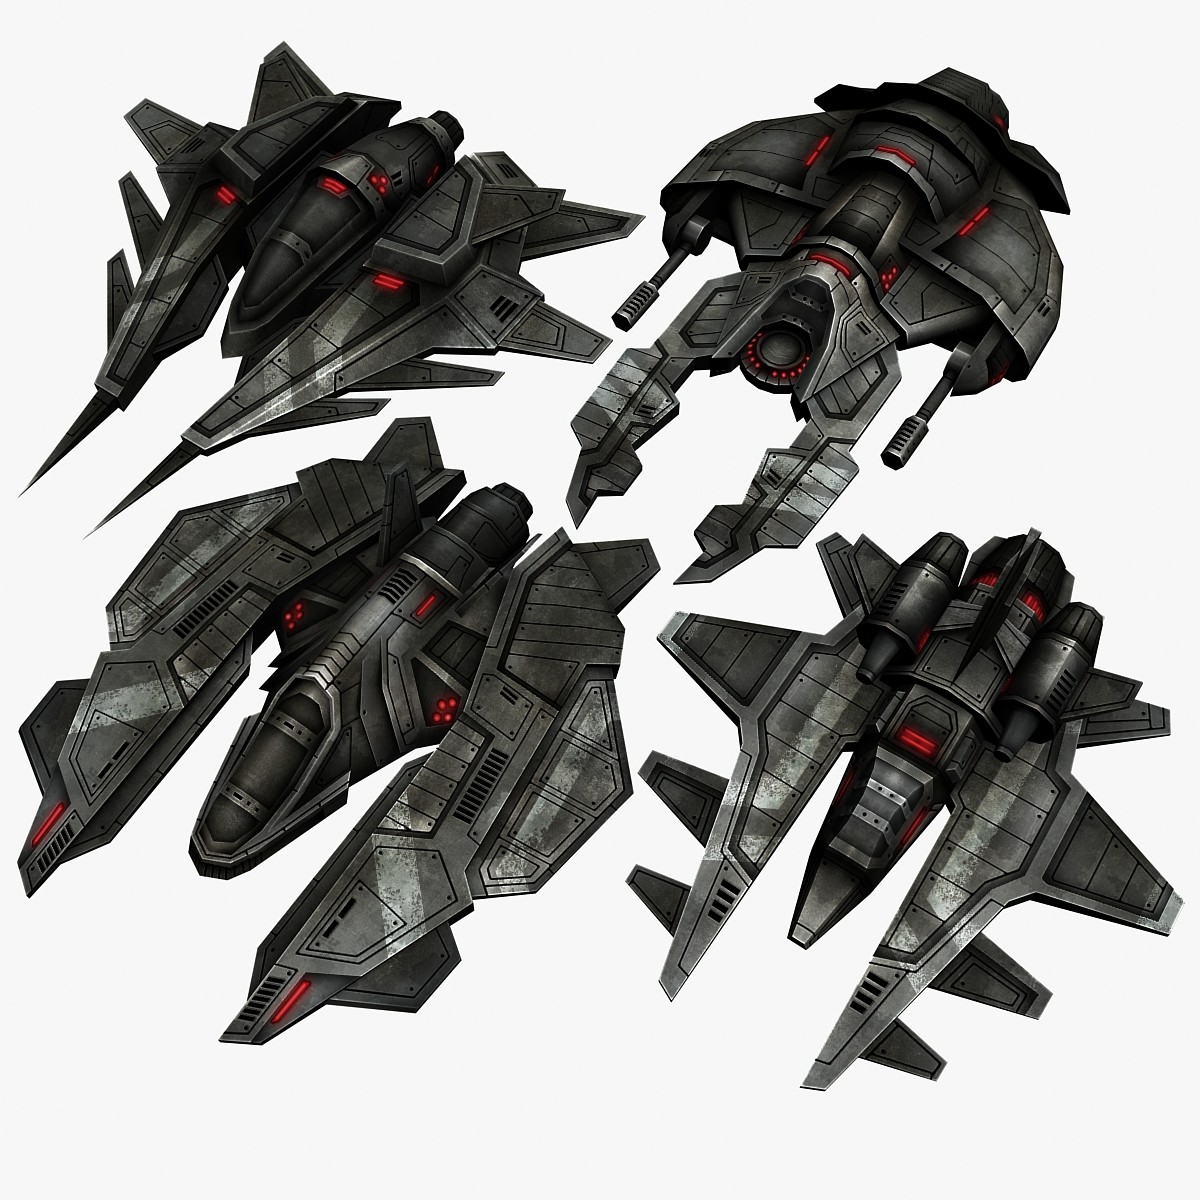 4_sci_fi_space_fighters_preview_1.jpg